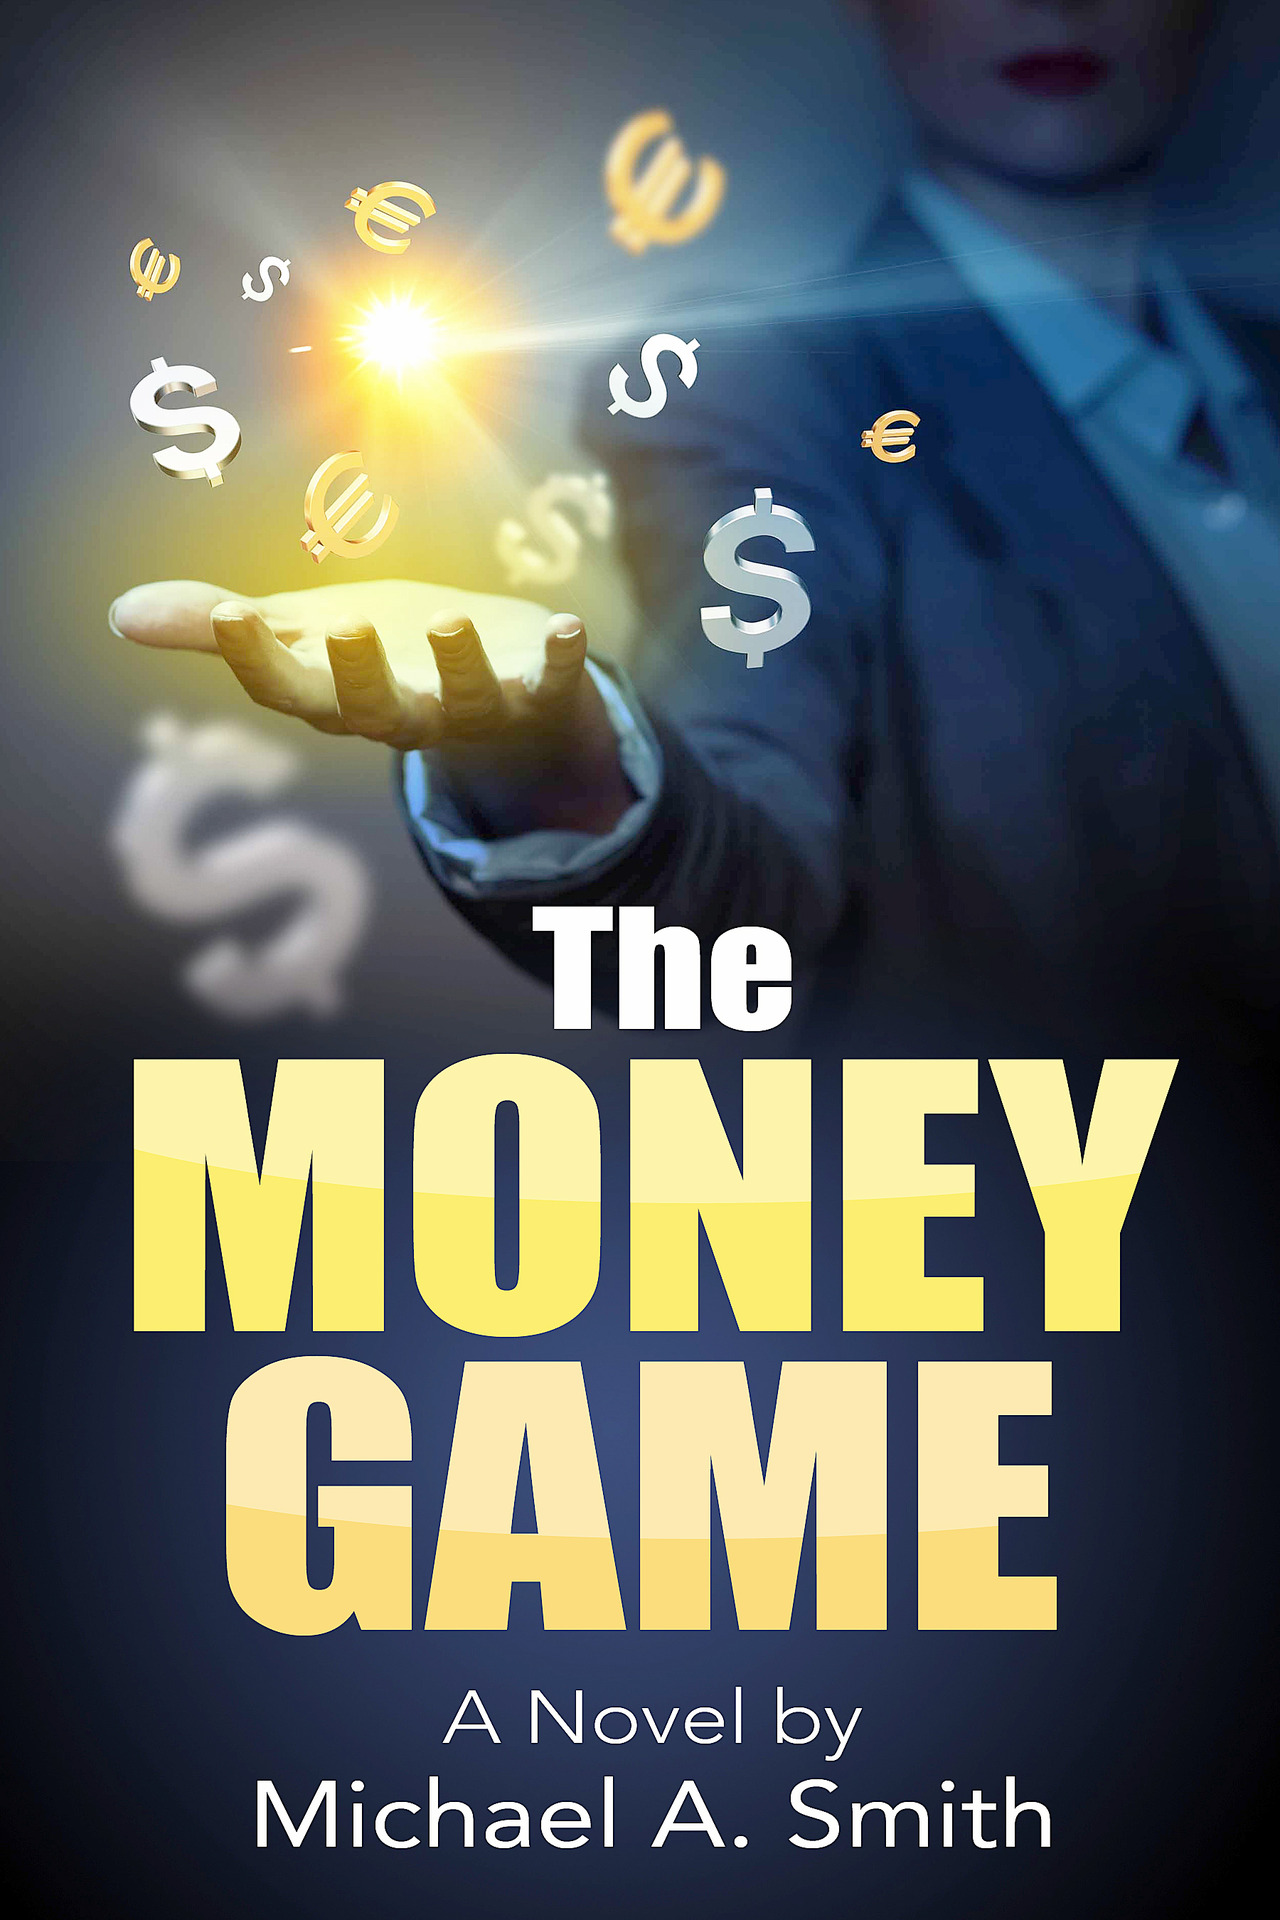 The money game (2) book cover adjusted